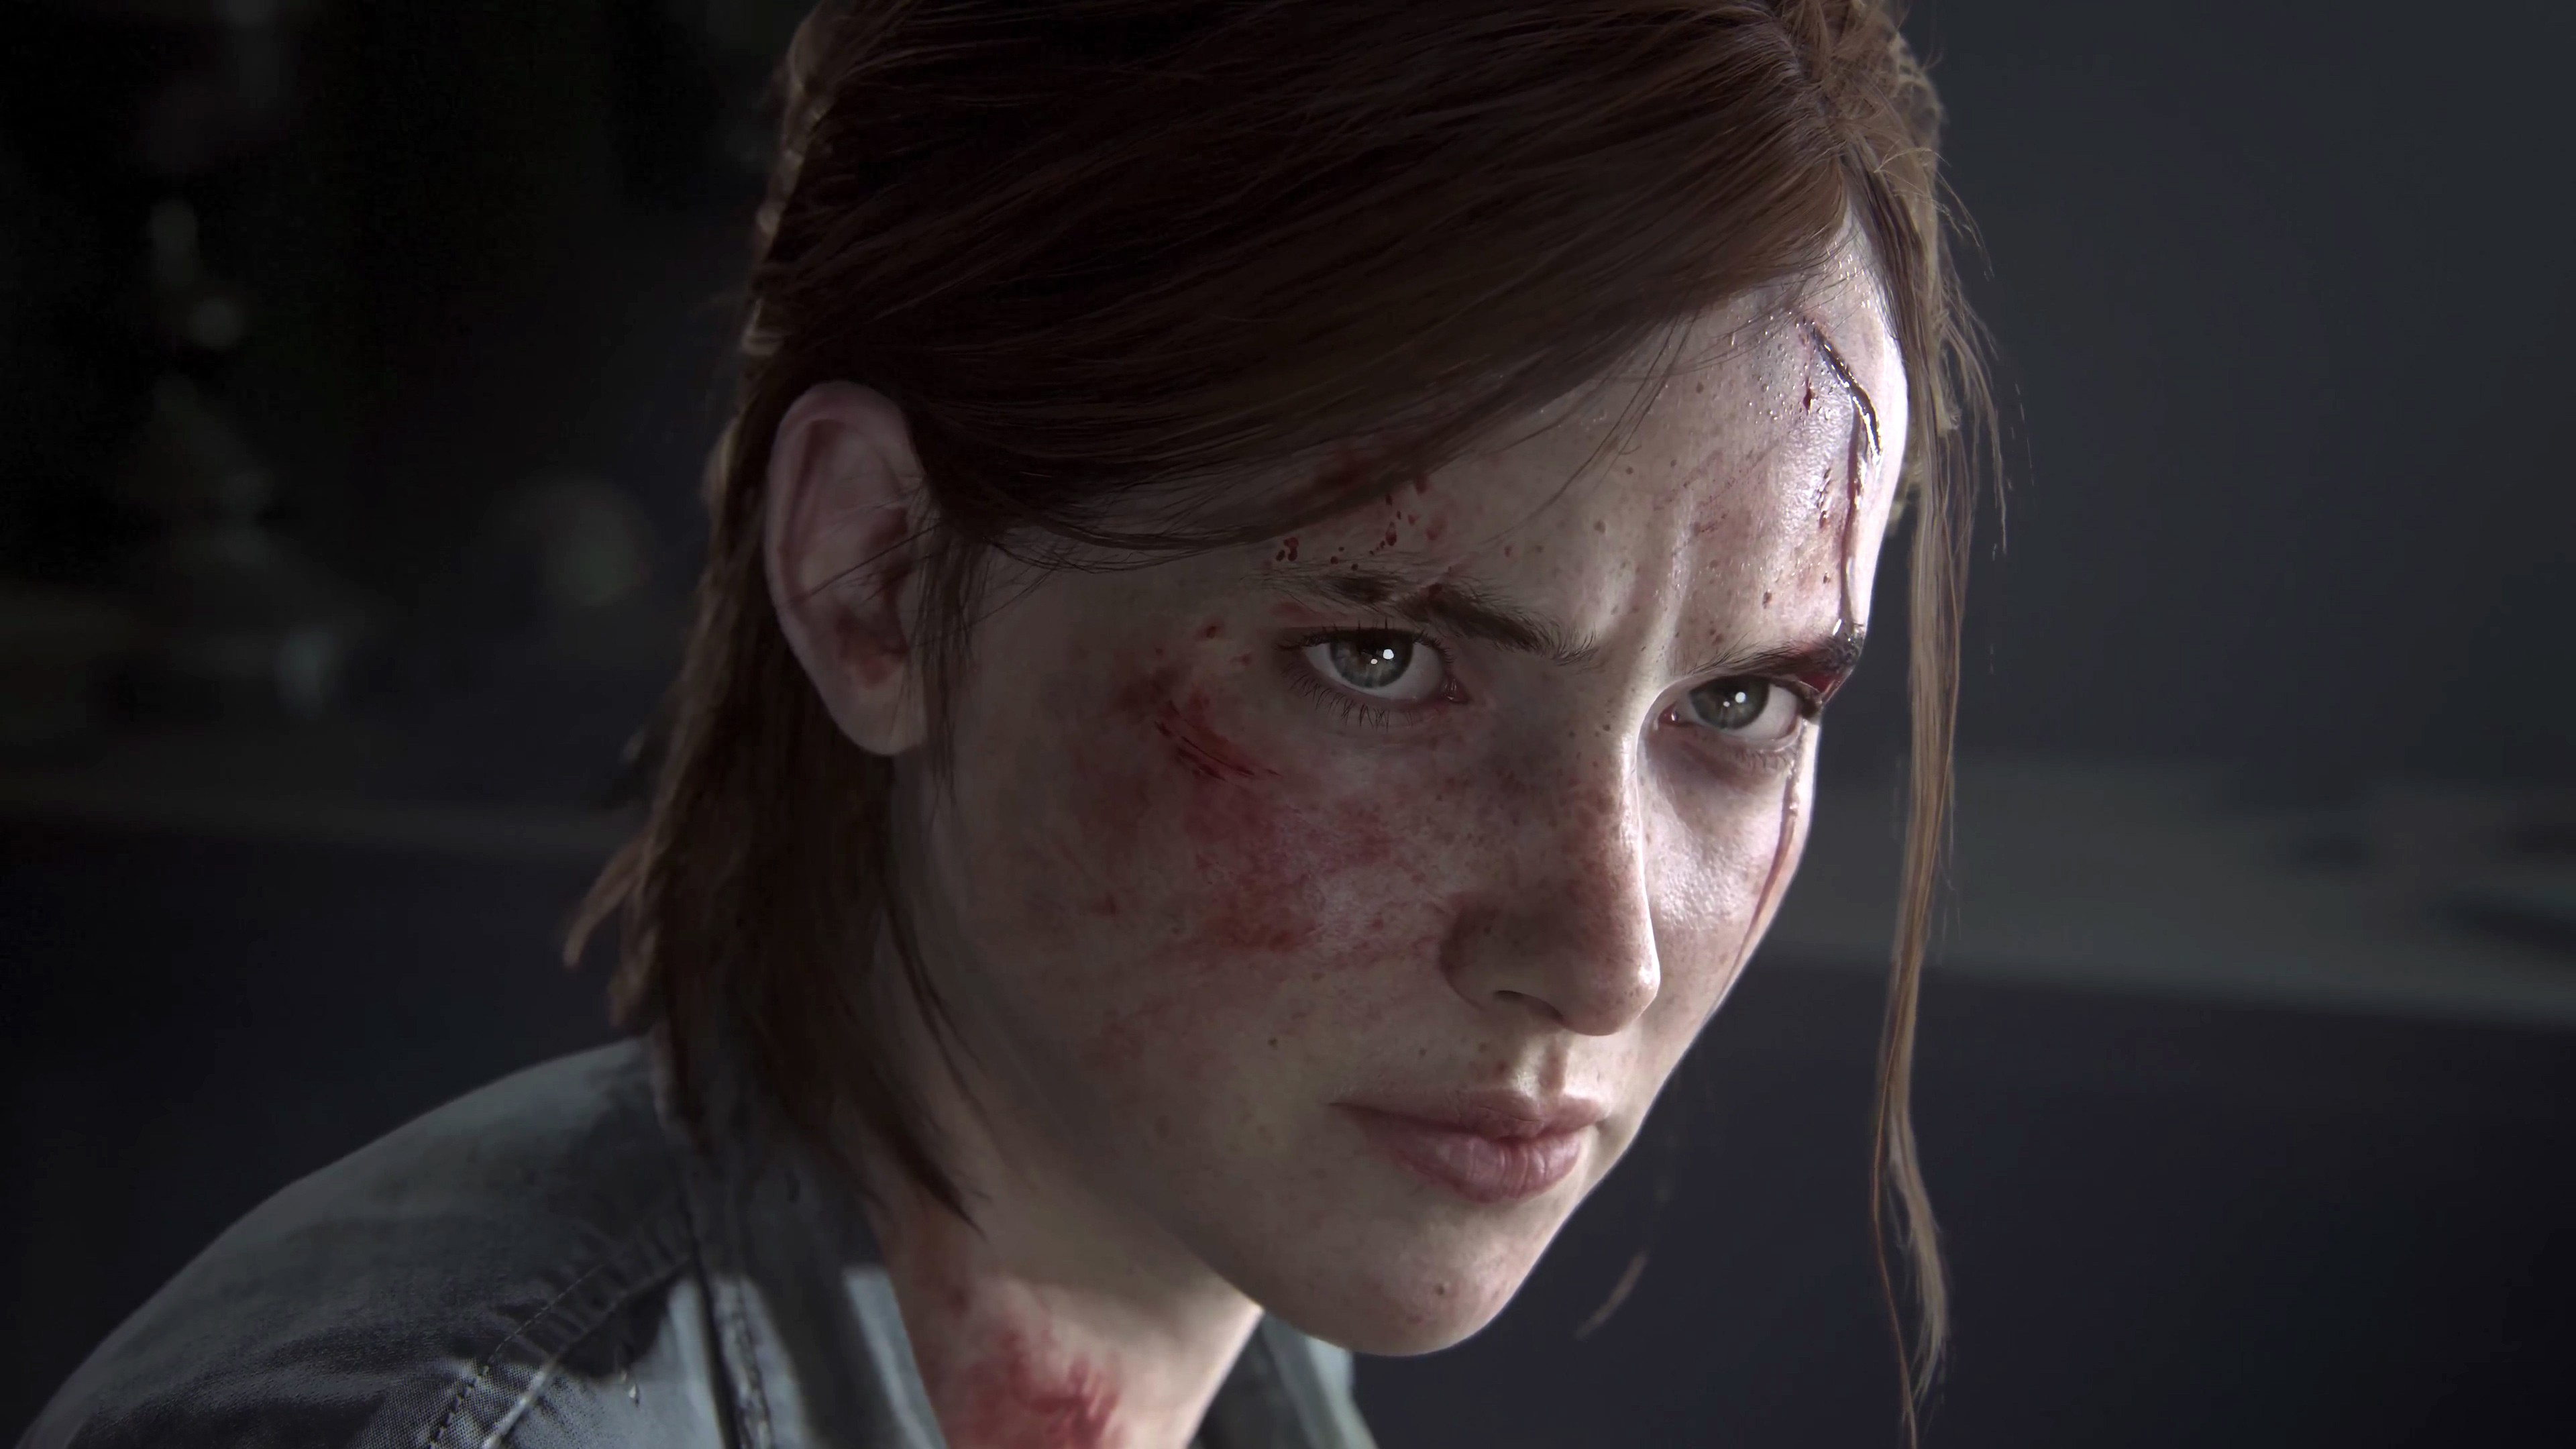 ellie the last of us part 2 wallpaper 4k background